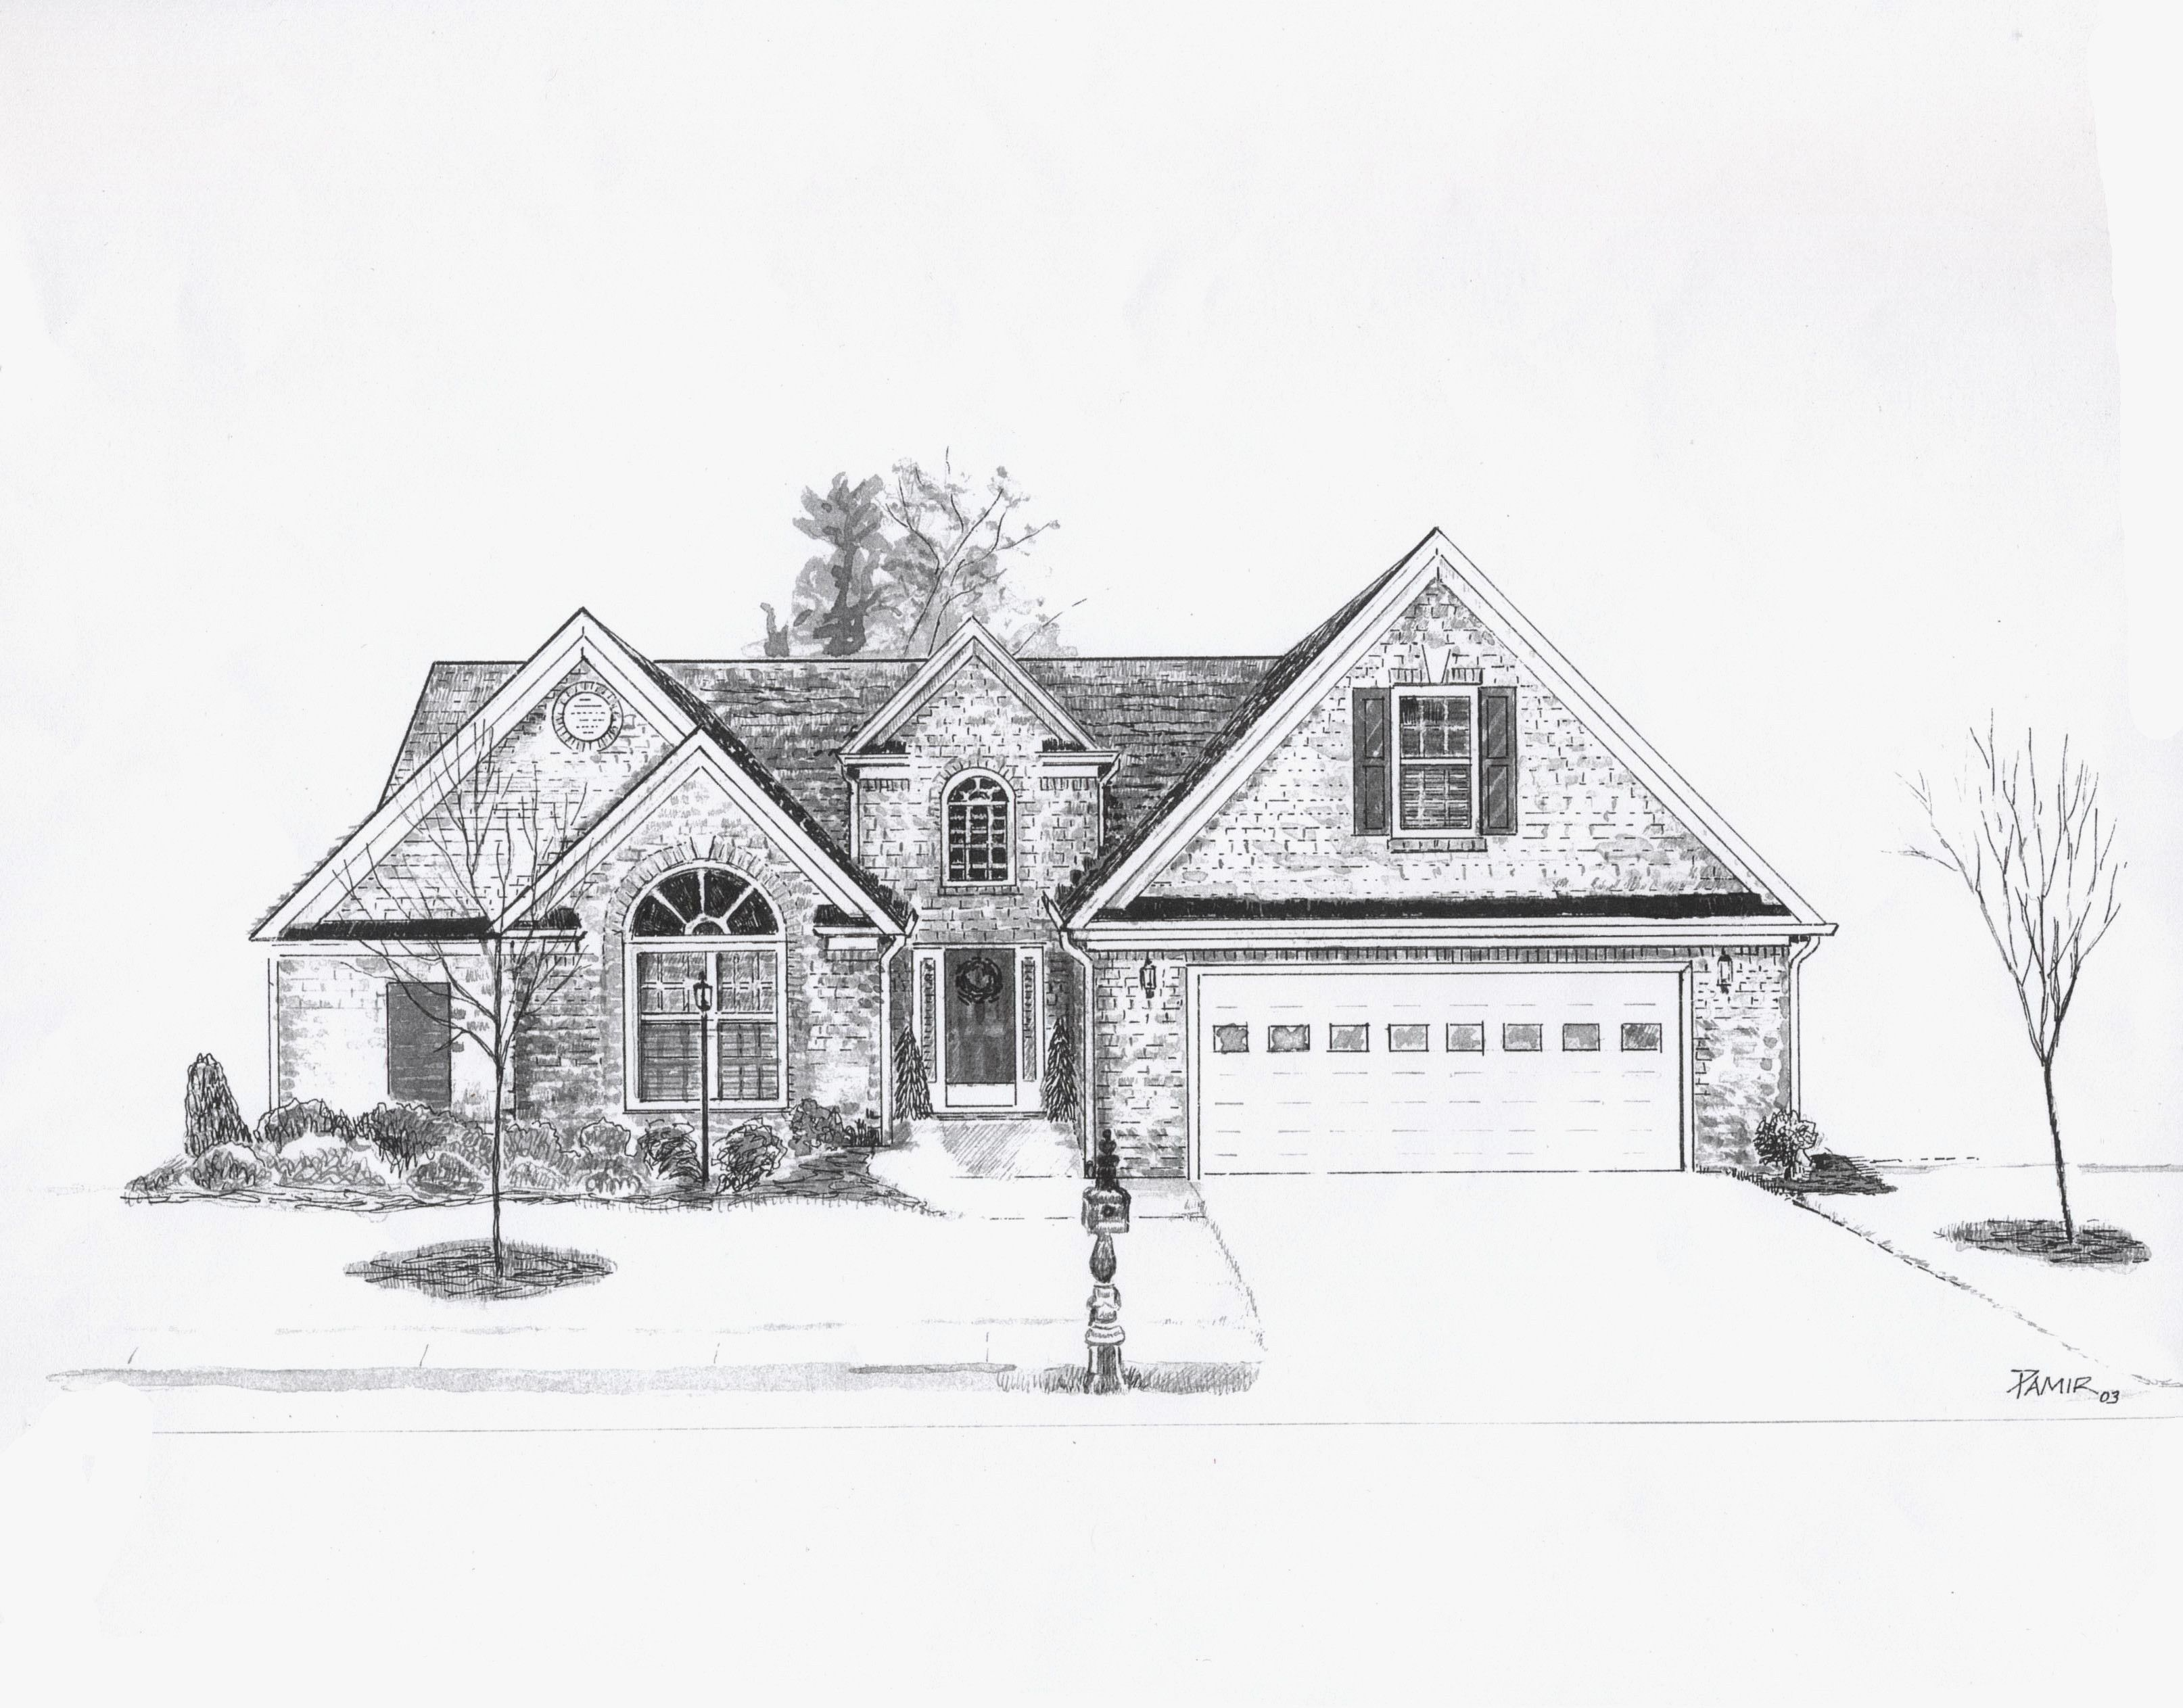 Cool Drawings Of Houses Awesome Cool House Drawings Home Building Plans Awesome Building In 2020 Dream House Drawing House Drawing House Sketch